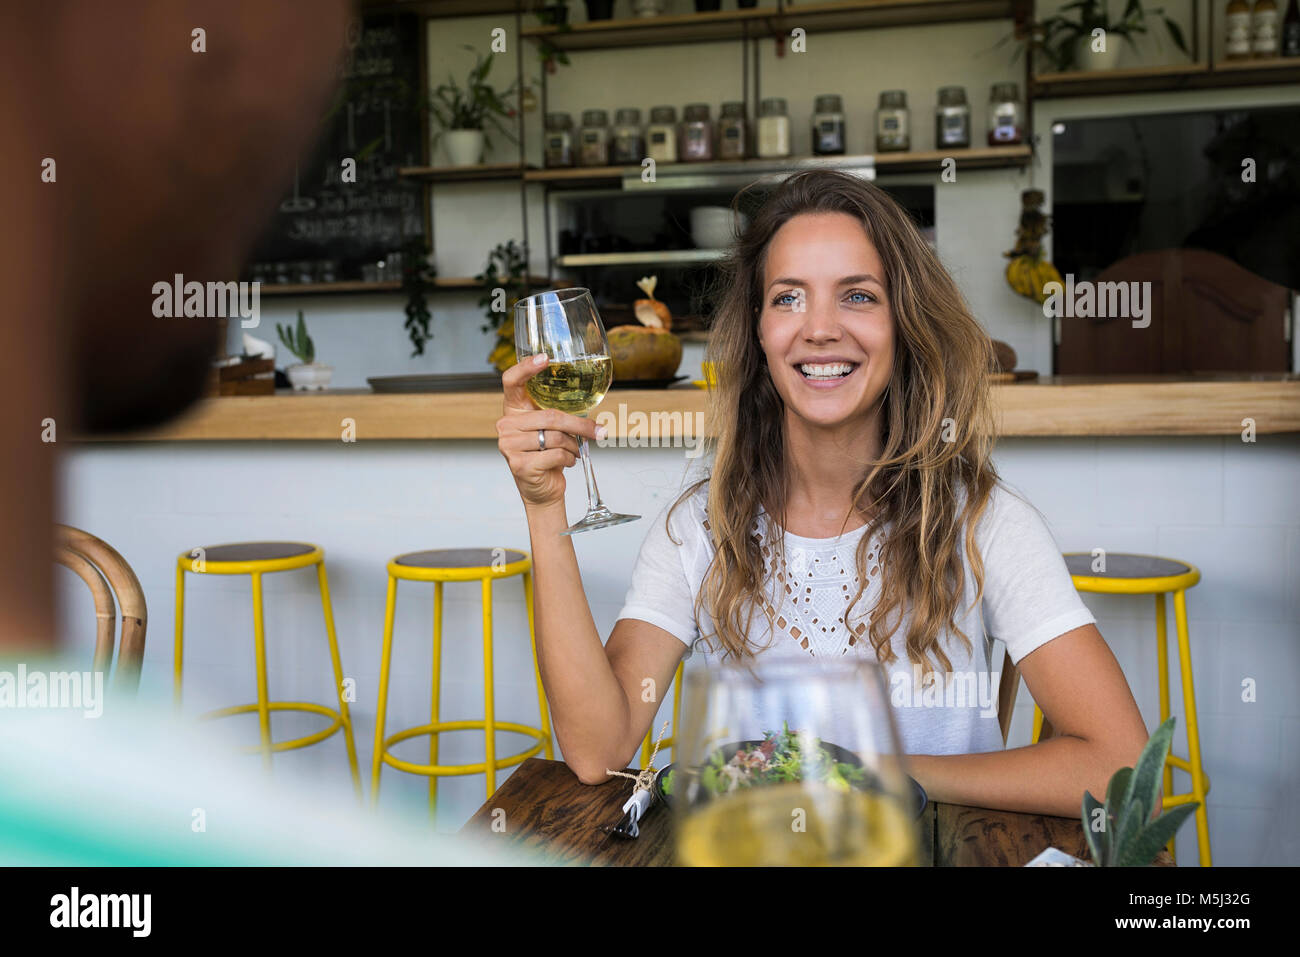 Smiling woman with glass of wine looking at man in a cafe - Stock Image